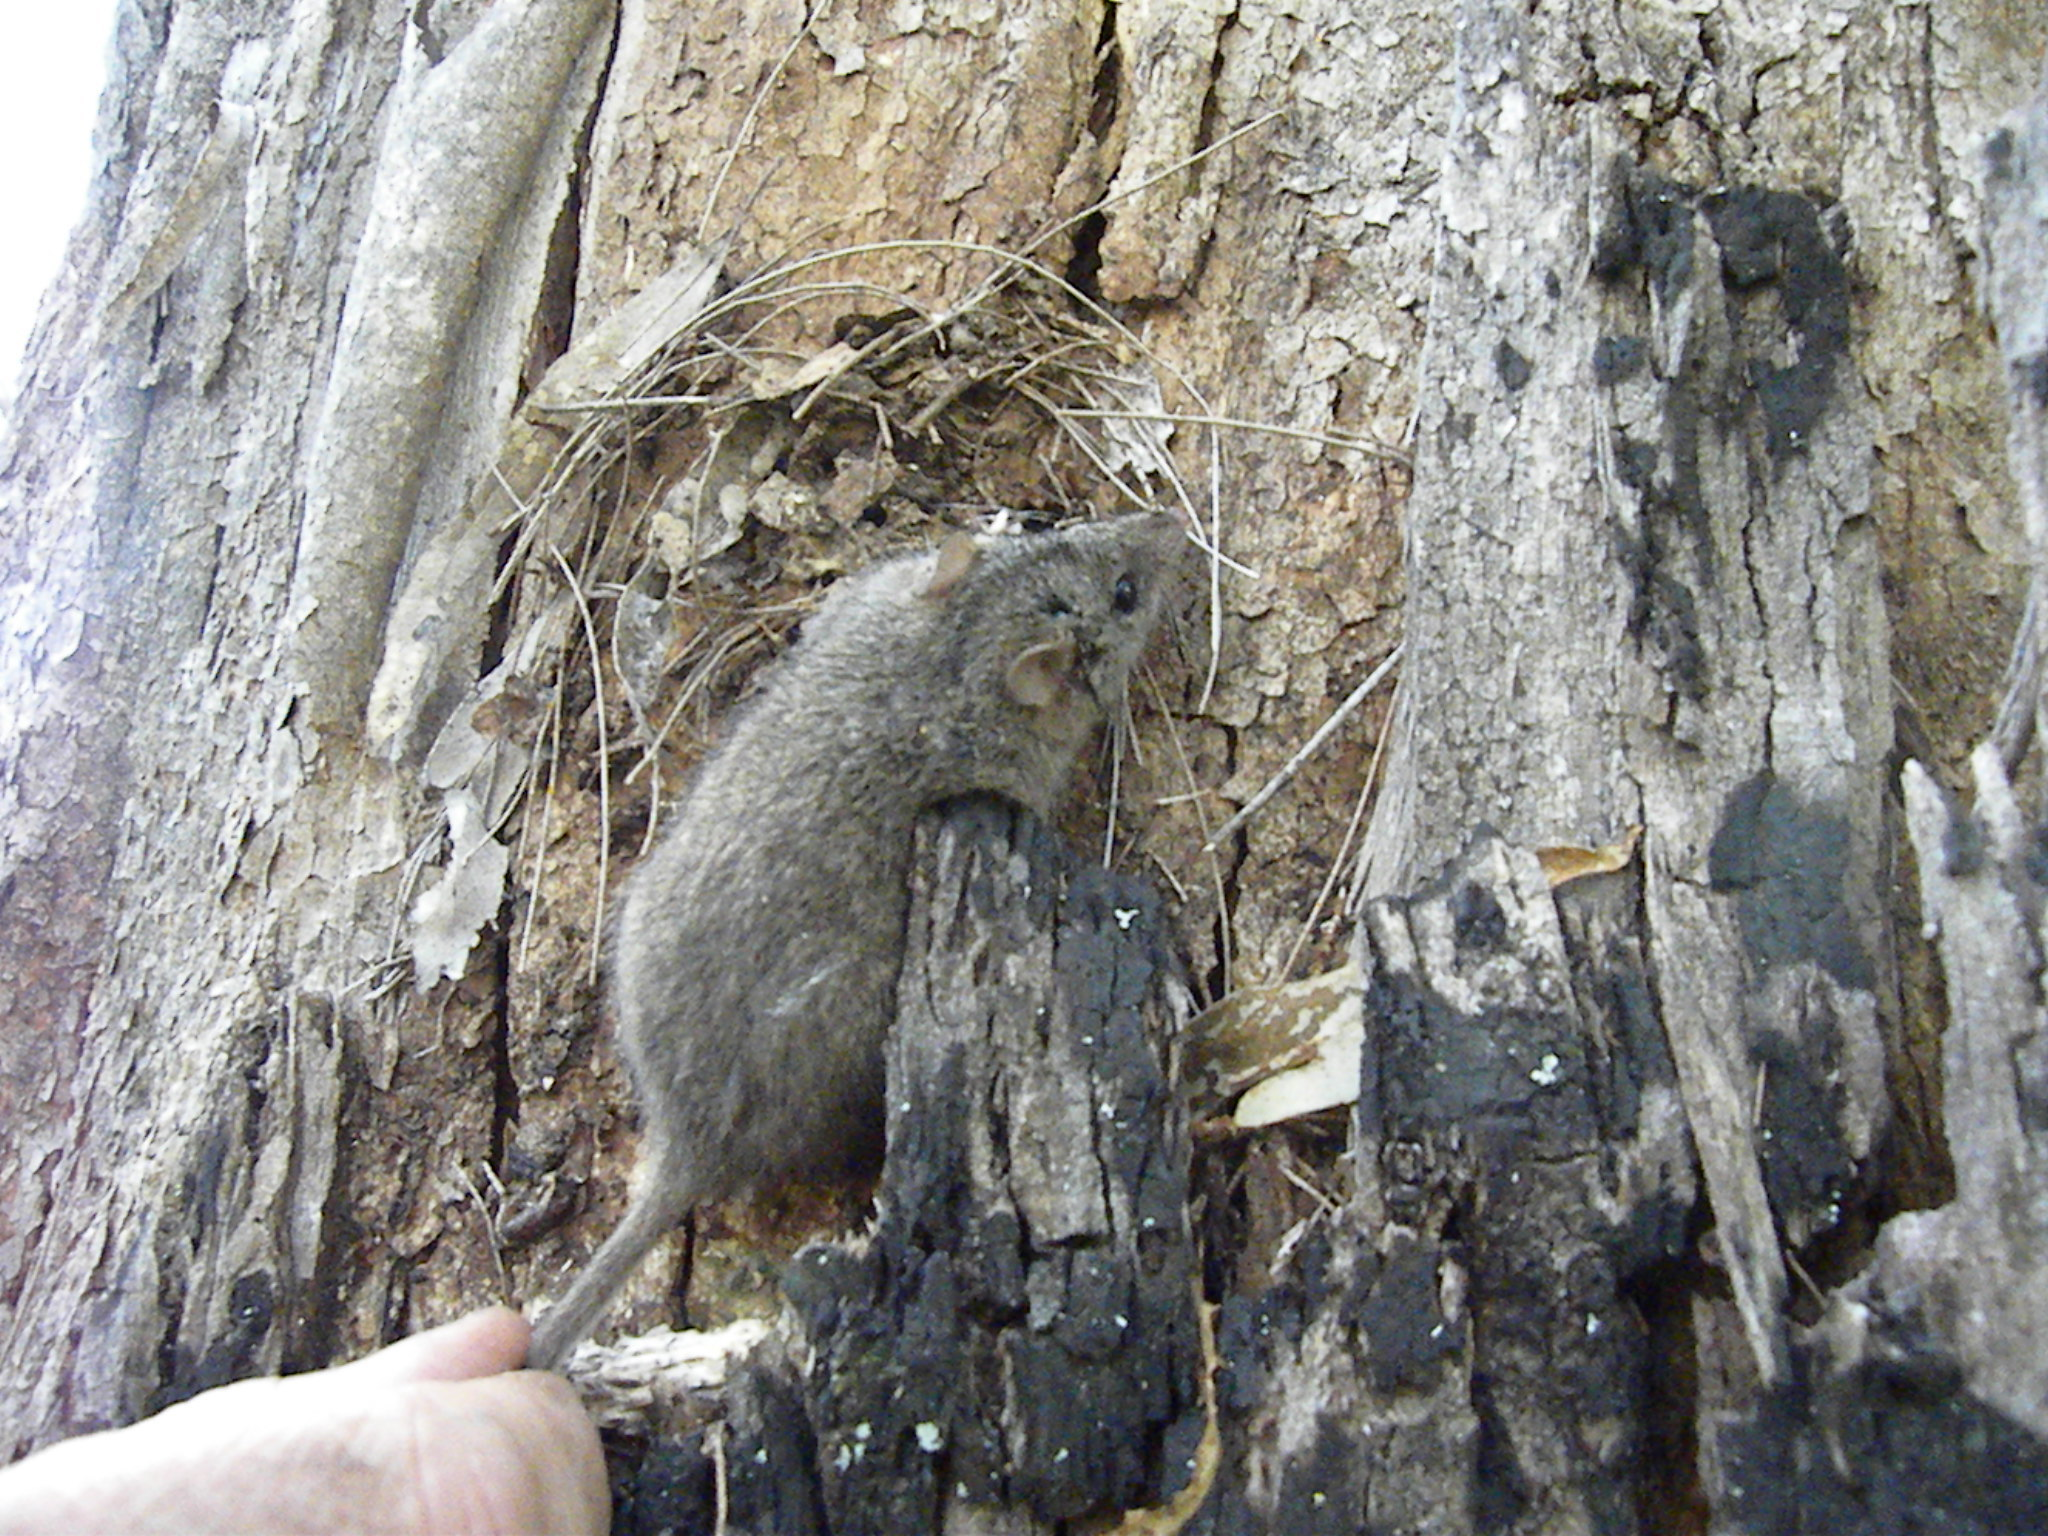 Image of Dusky Antechinus